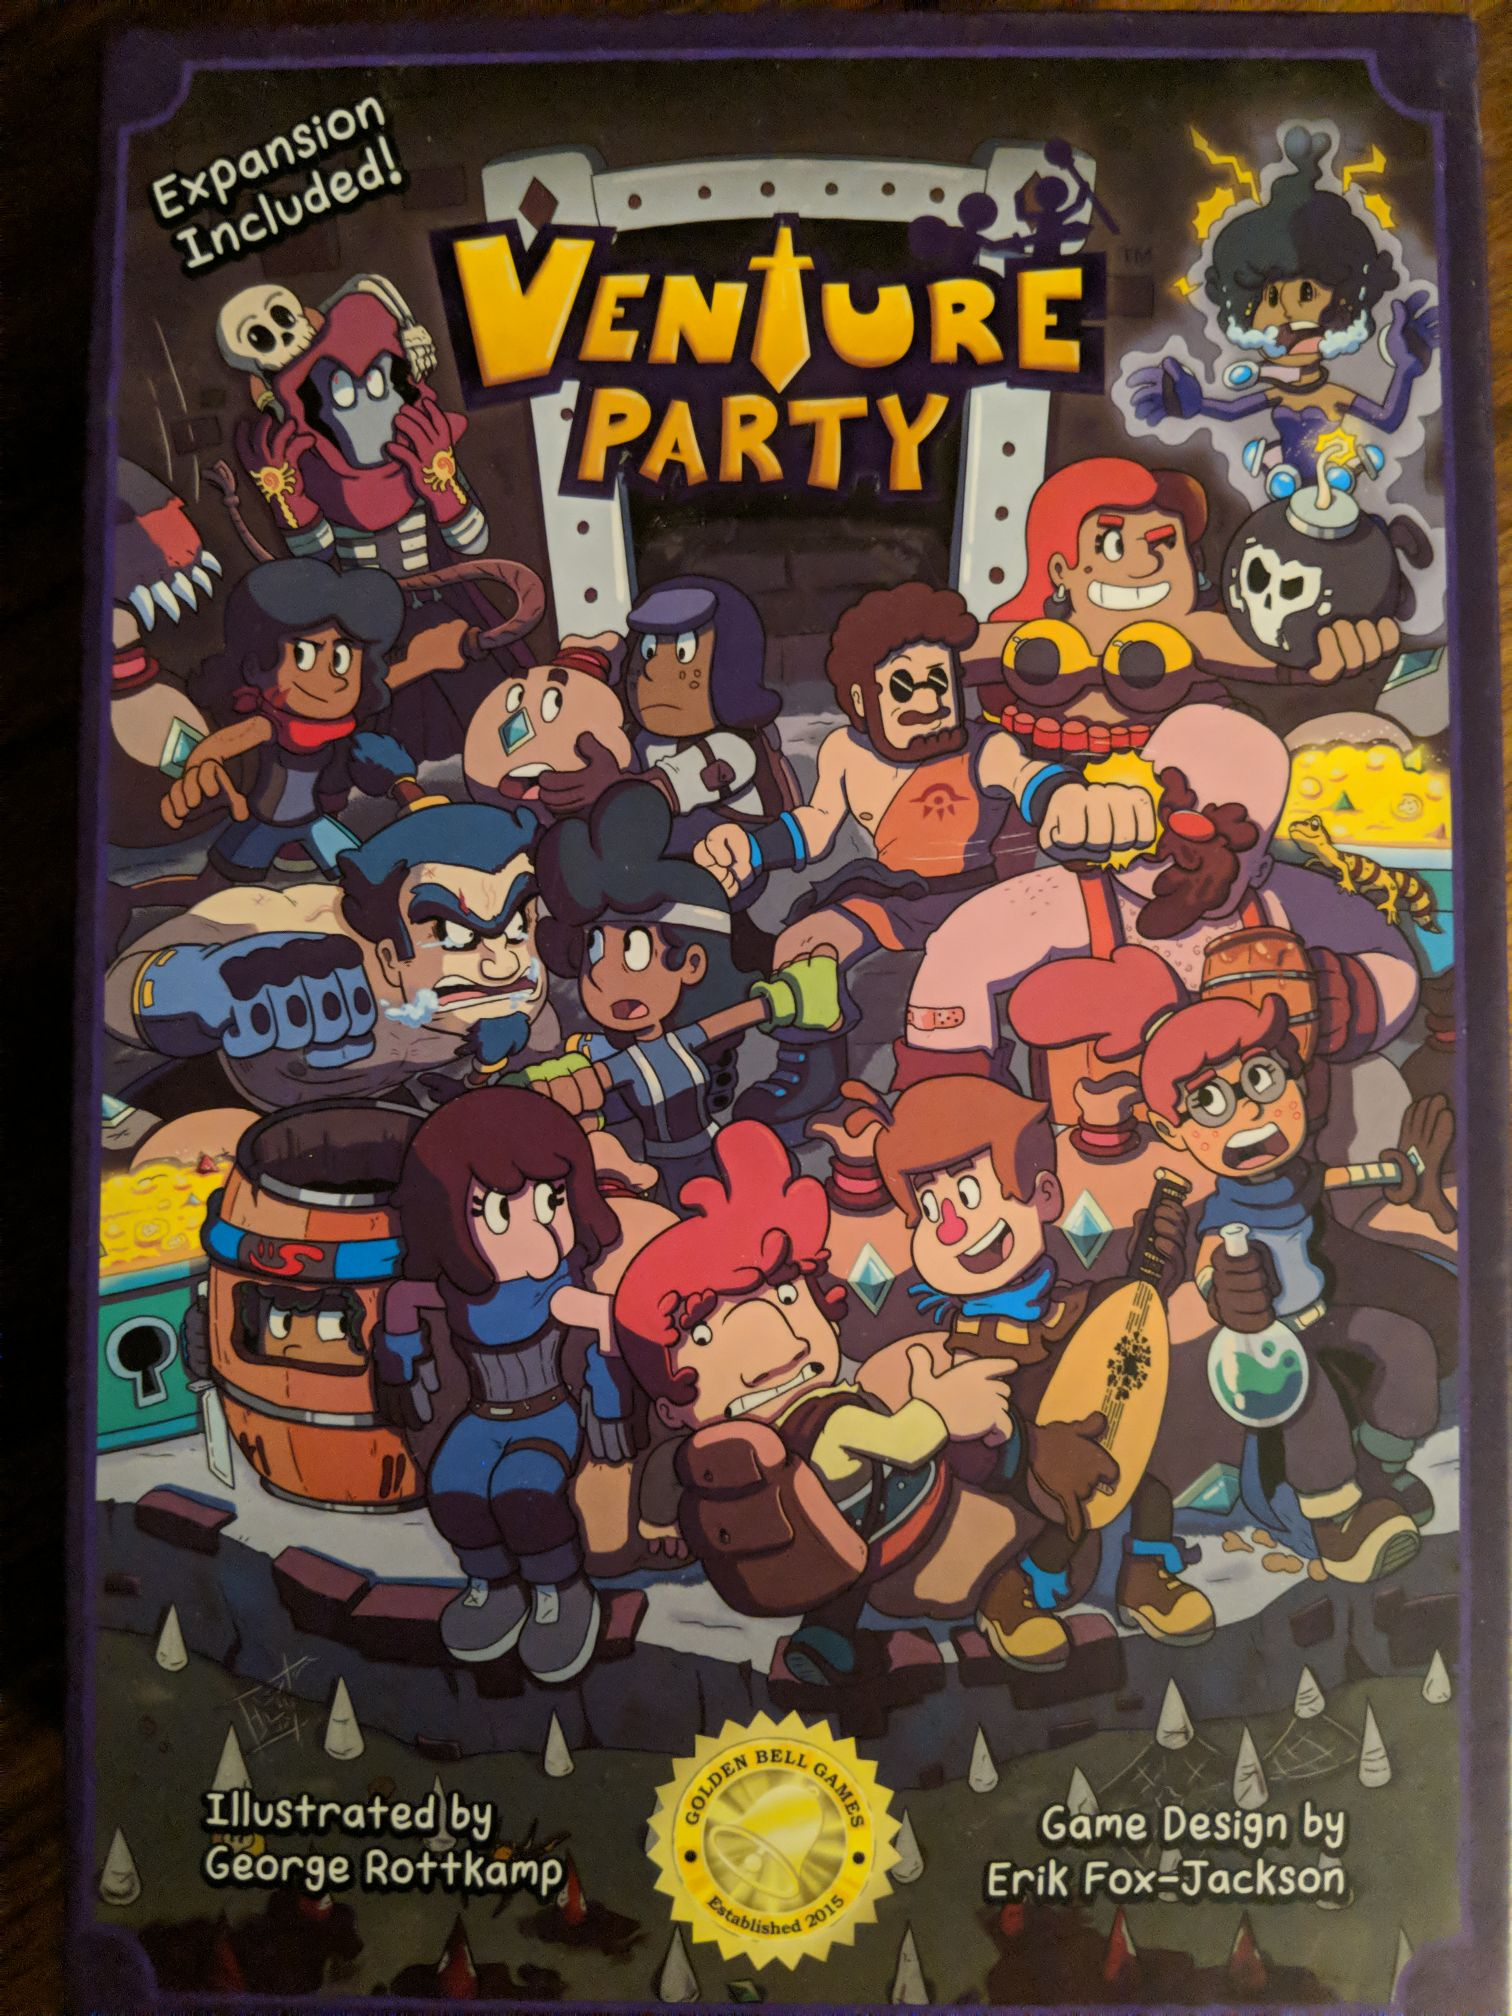 Venture Party Board Game - Golden Bell Games (Card Game) front image (front cover)